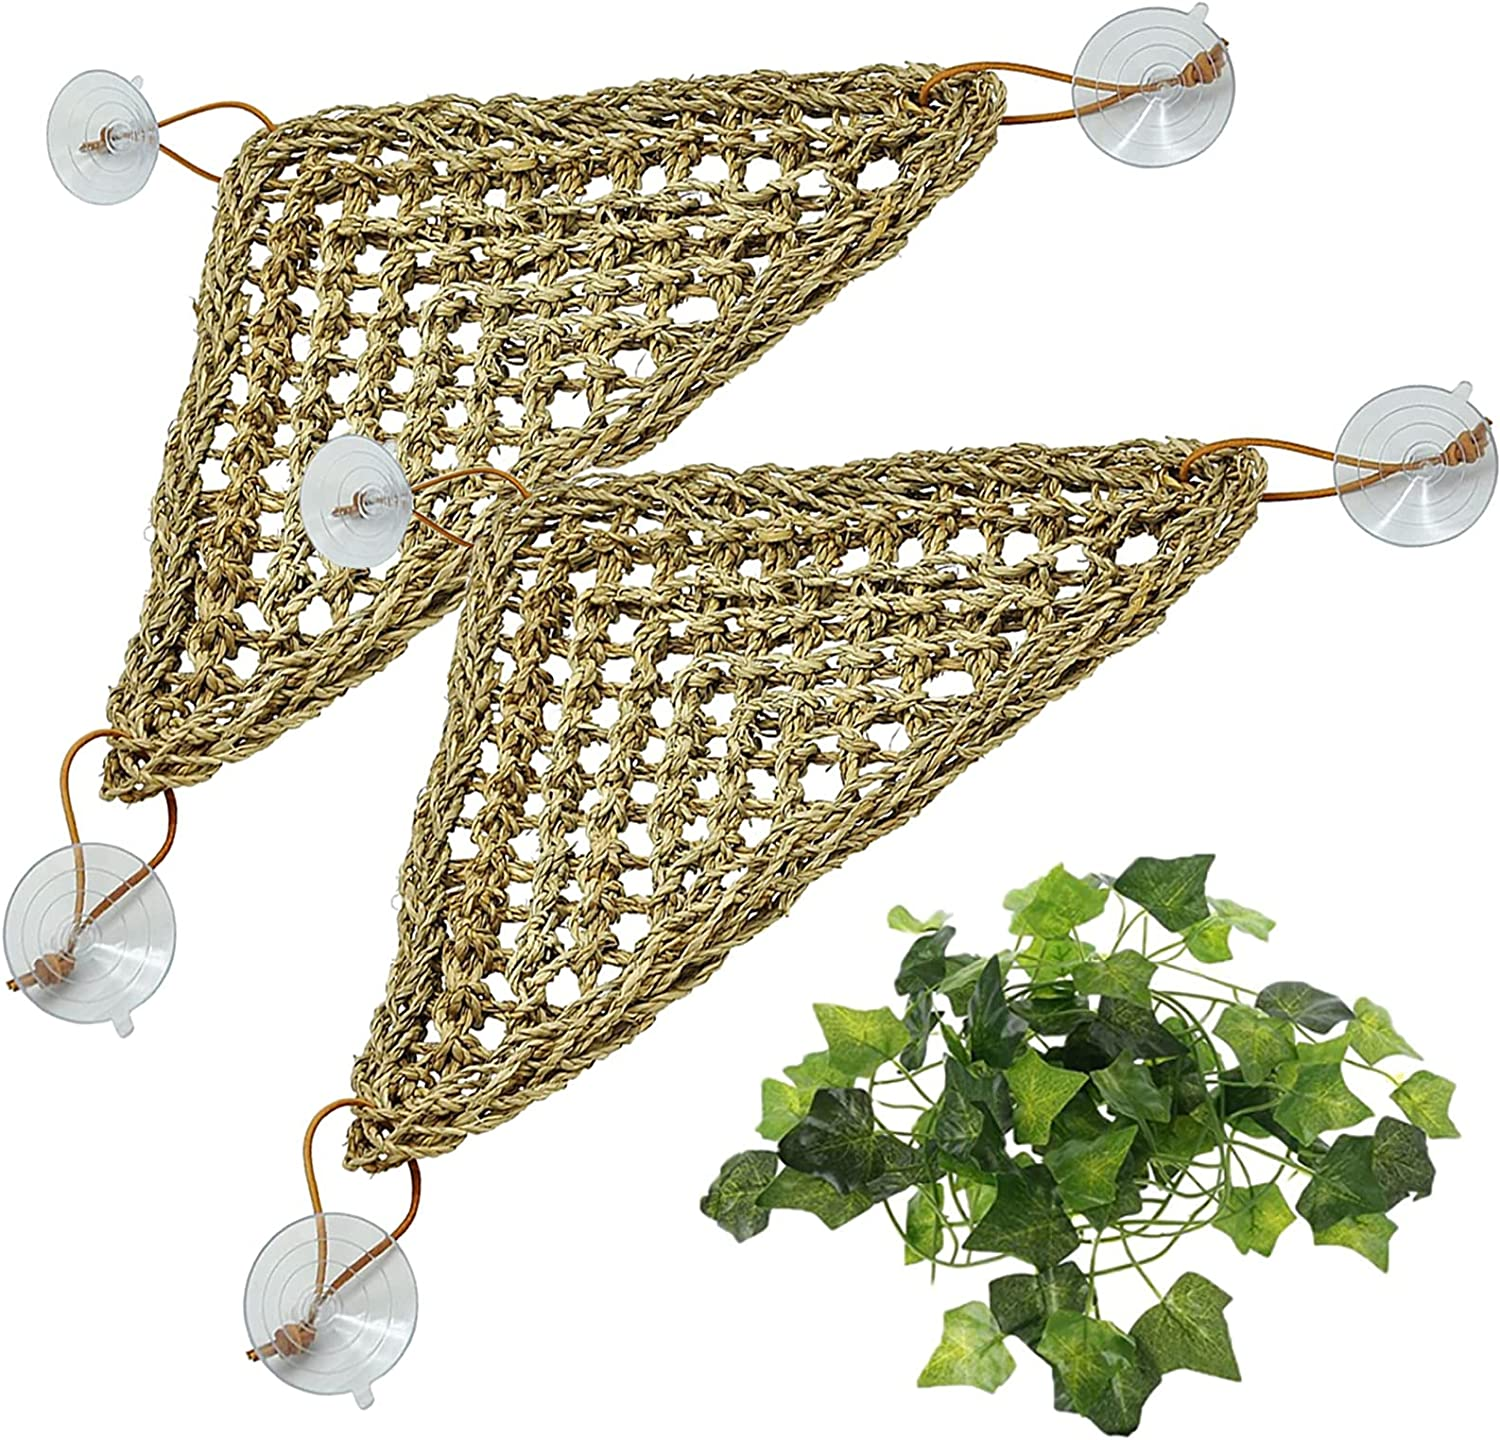 Tfwadmx 2 Pack Bearded Dragon Hammock Lizards Lounger, Small Reptile Climbing Accessories, 100% Natural Seagrass Fibers Hammock for Reptiles, Geckos, Anoles, Iguanas, Hermit Crabs, Triangular